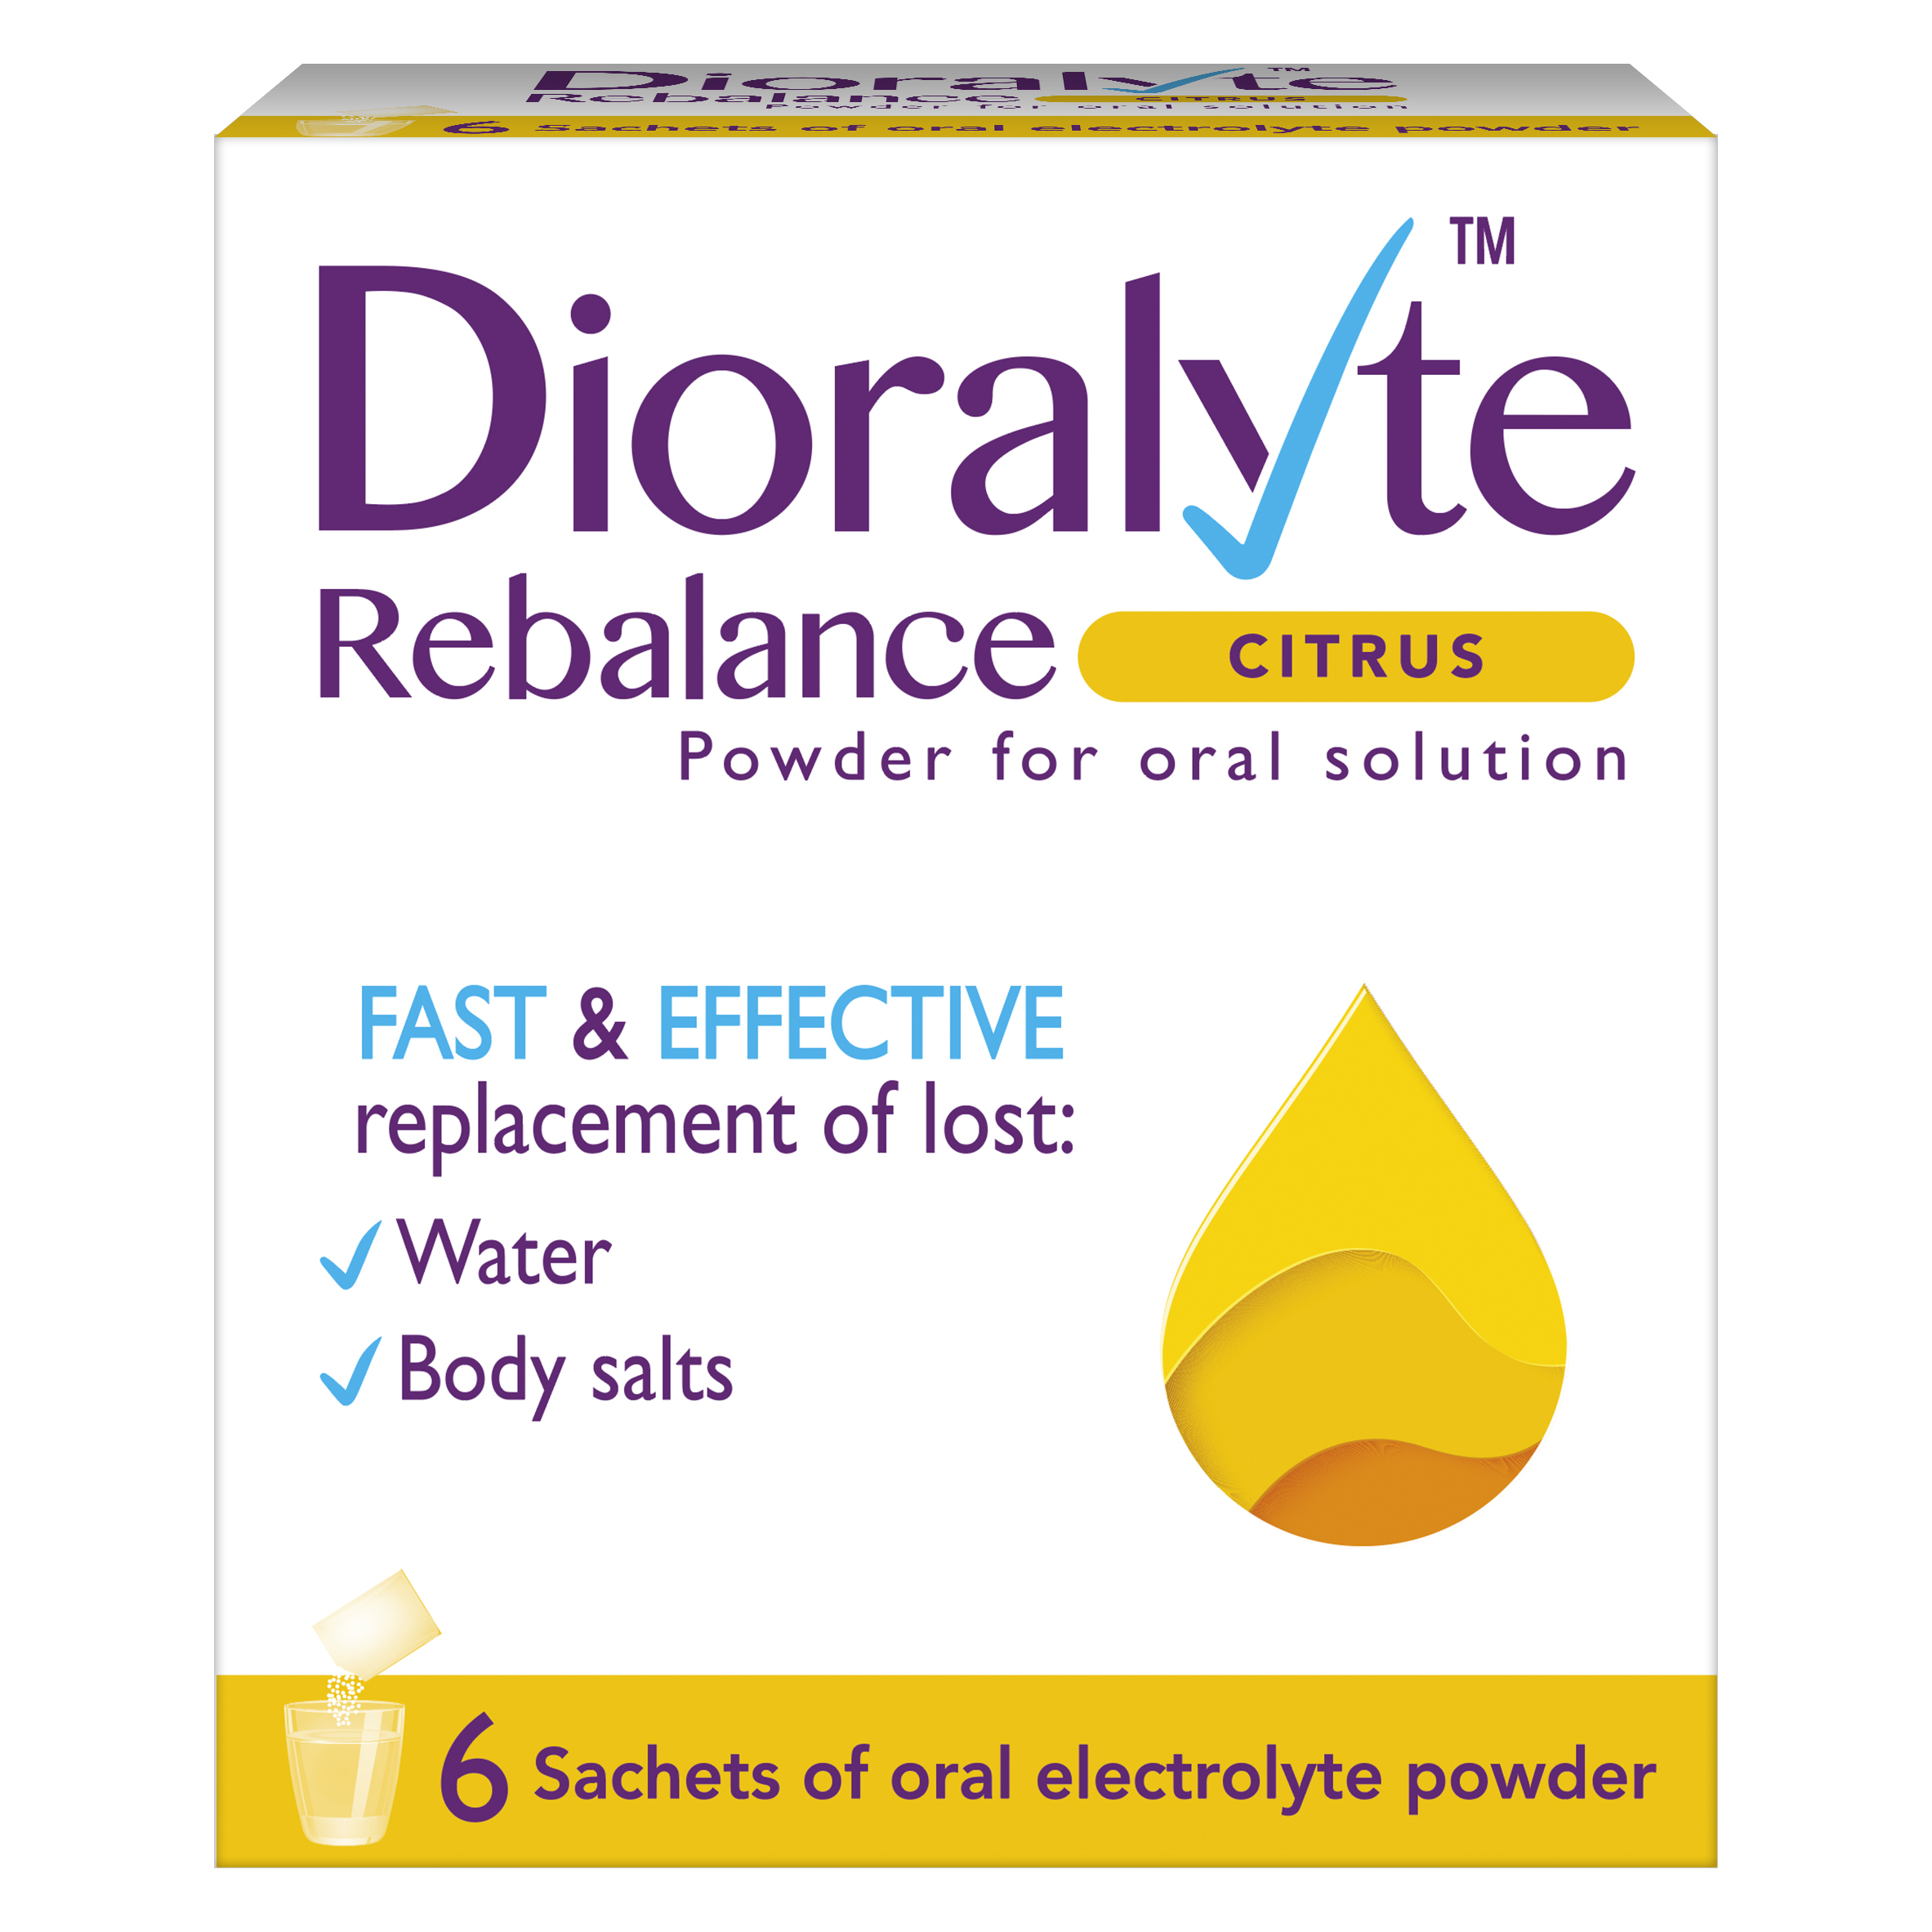 Dioralyte Citrus Powder For Oral Solution